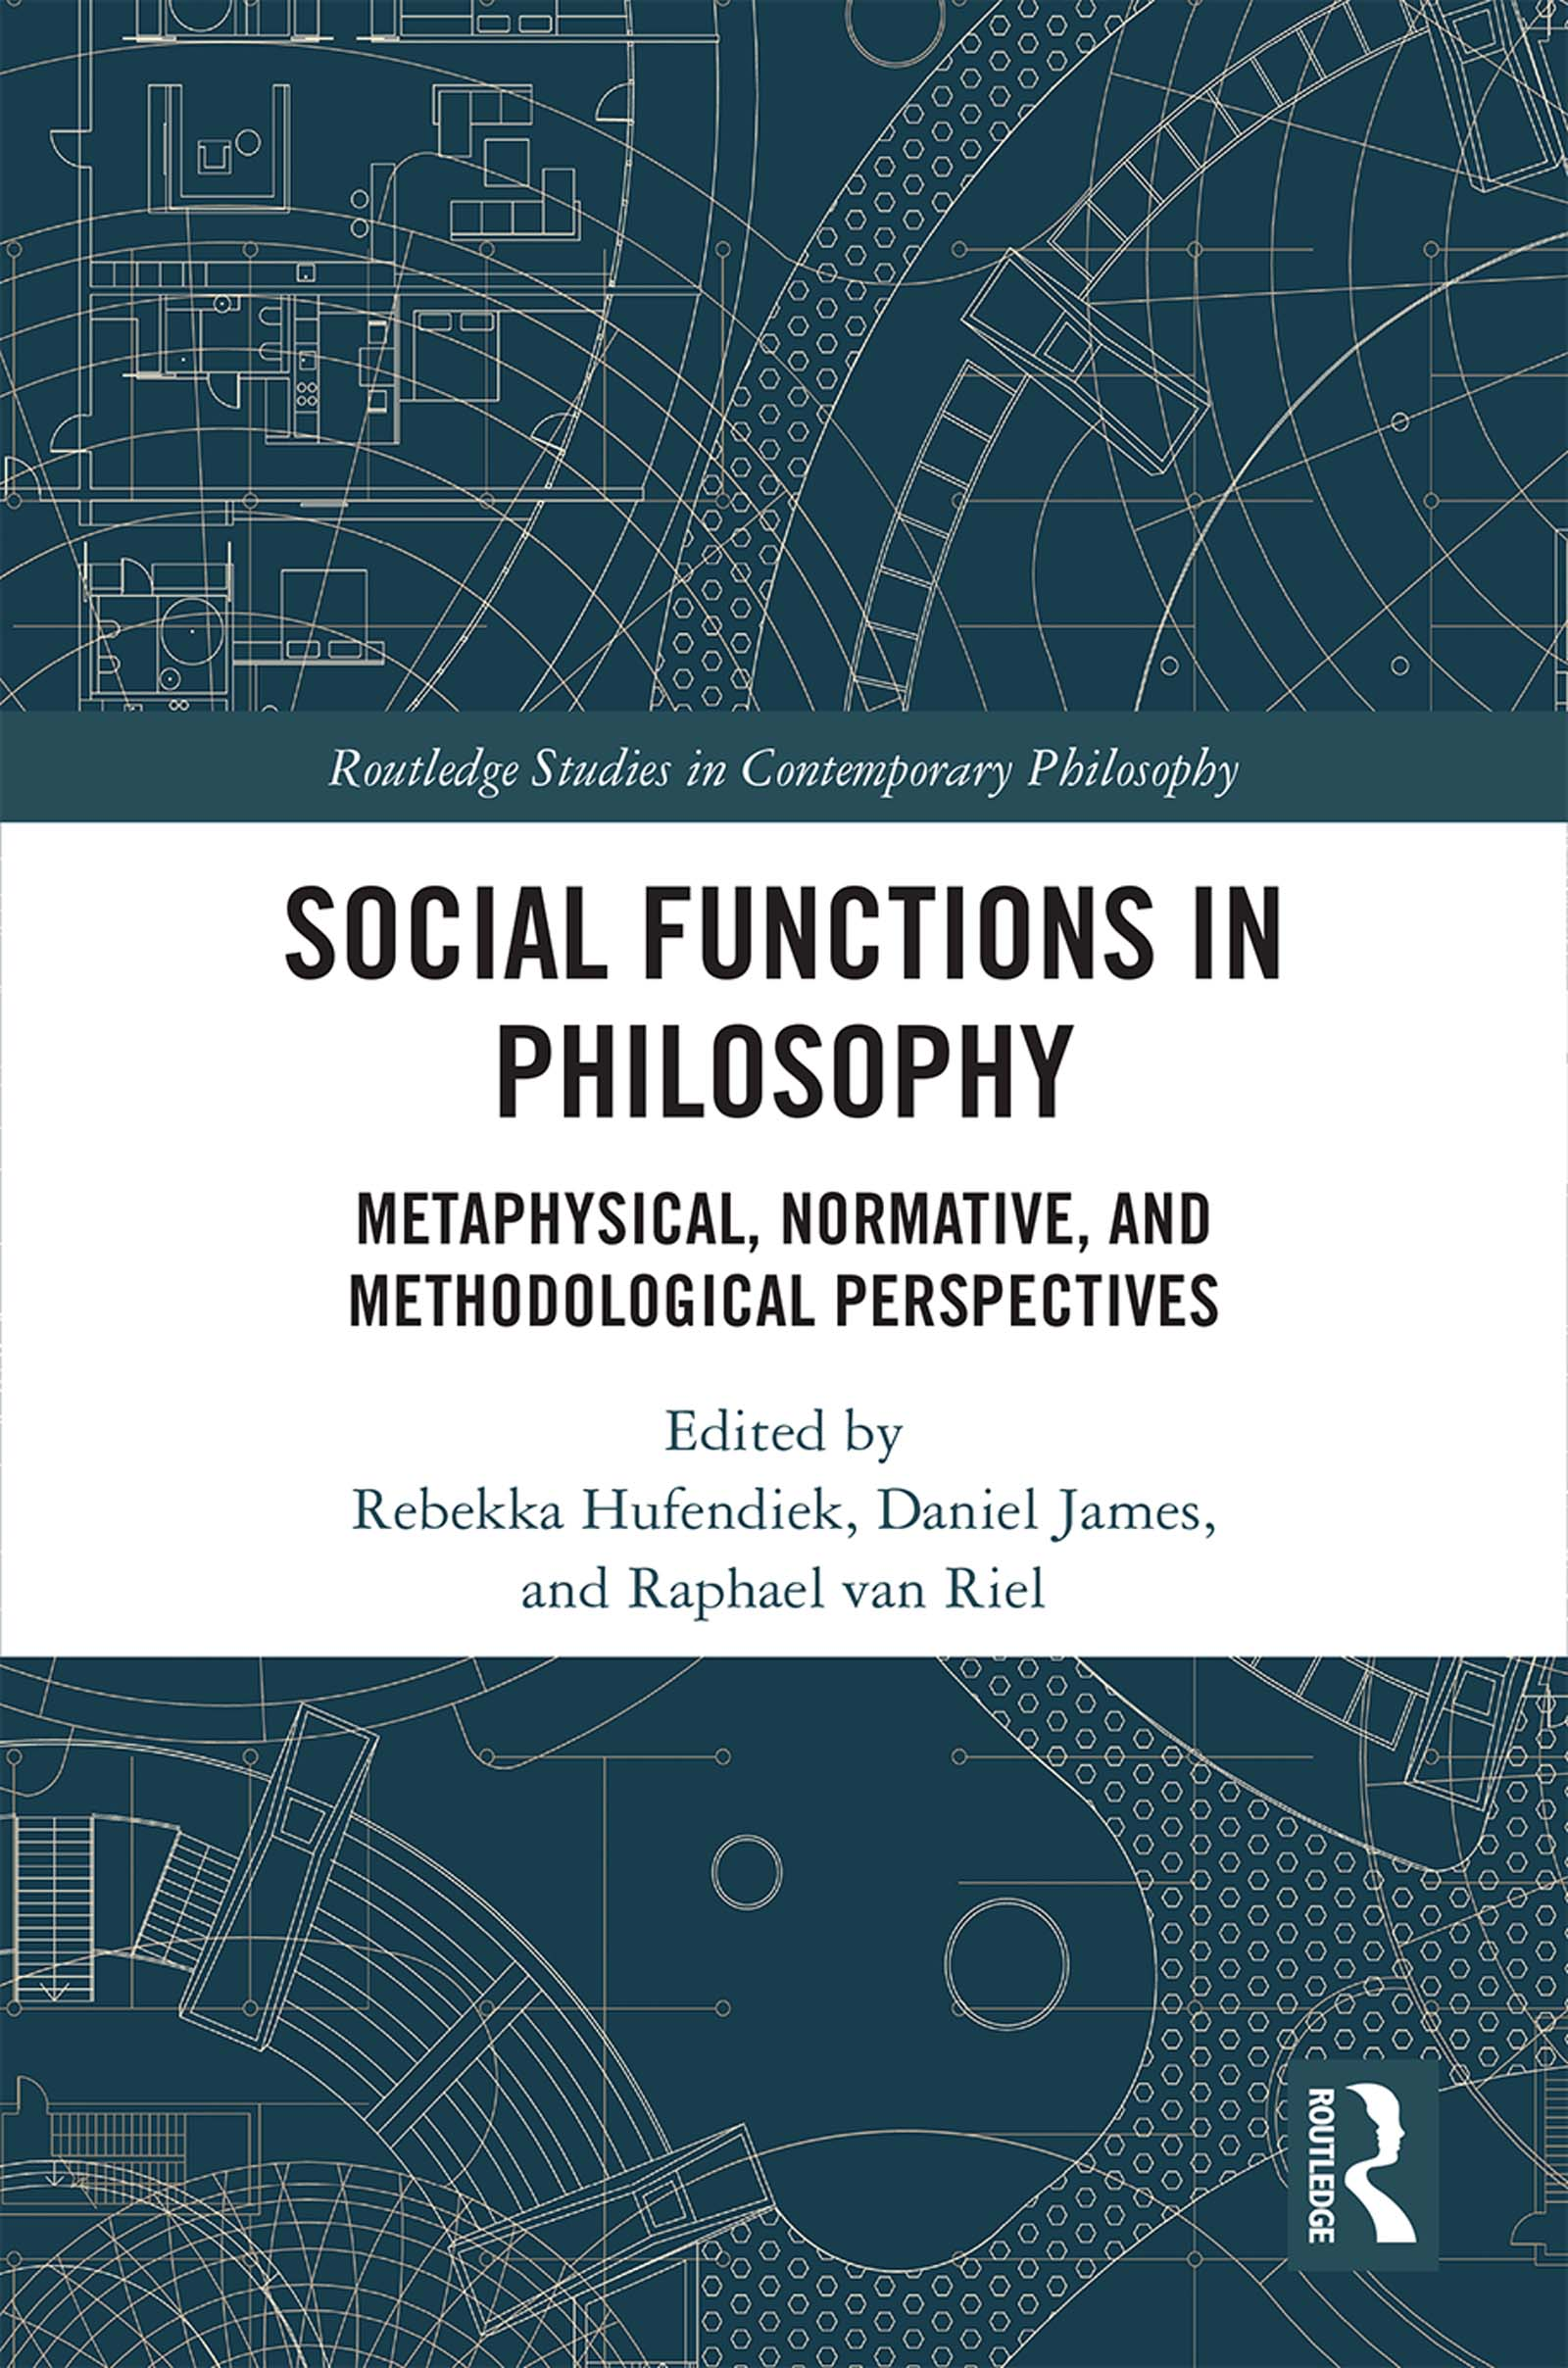 Social Functions in Philosophy: Metaphysical, Normative, and Methodological Perspectives book cover